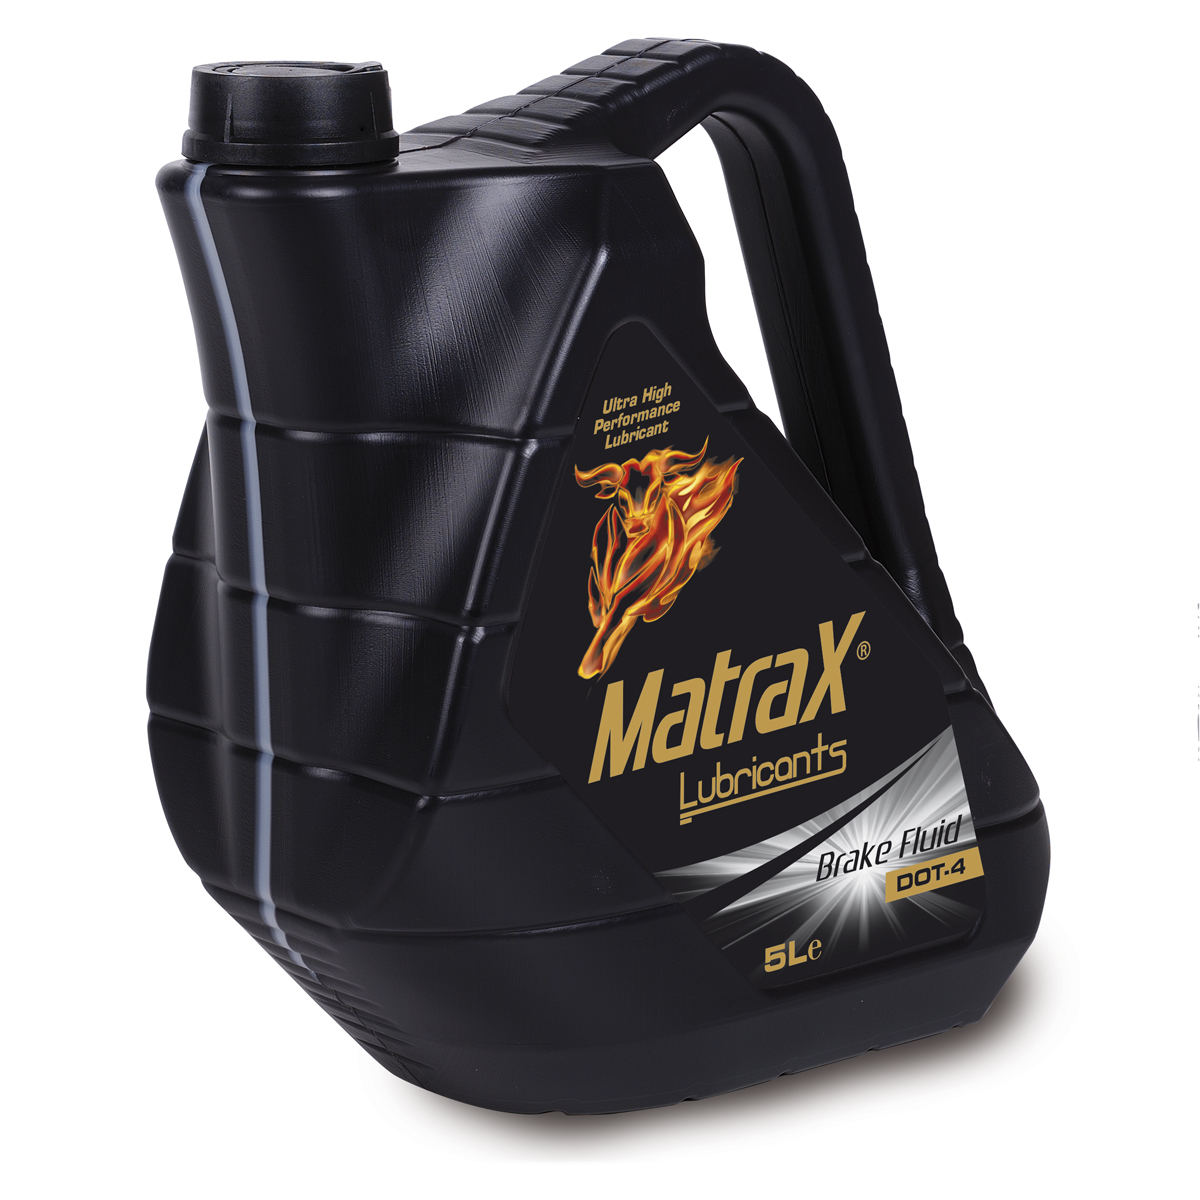 matrax-lubricants-brake-fluid-dot-4-5l